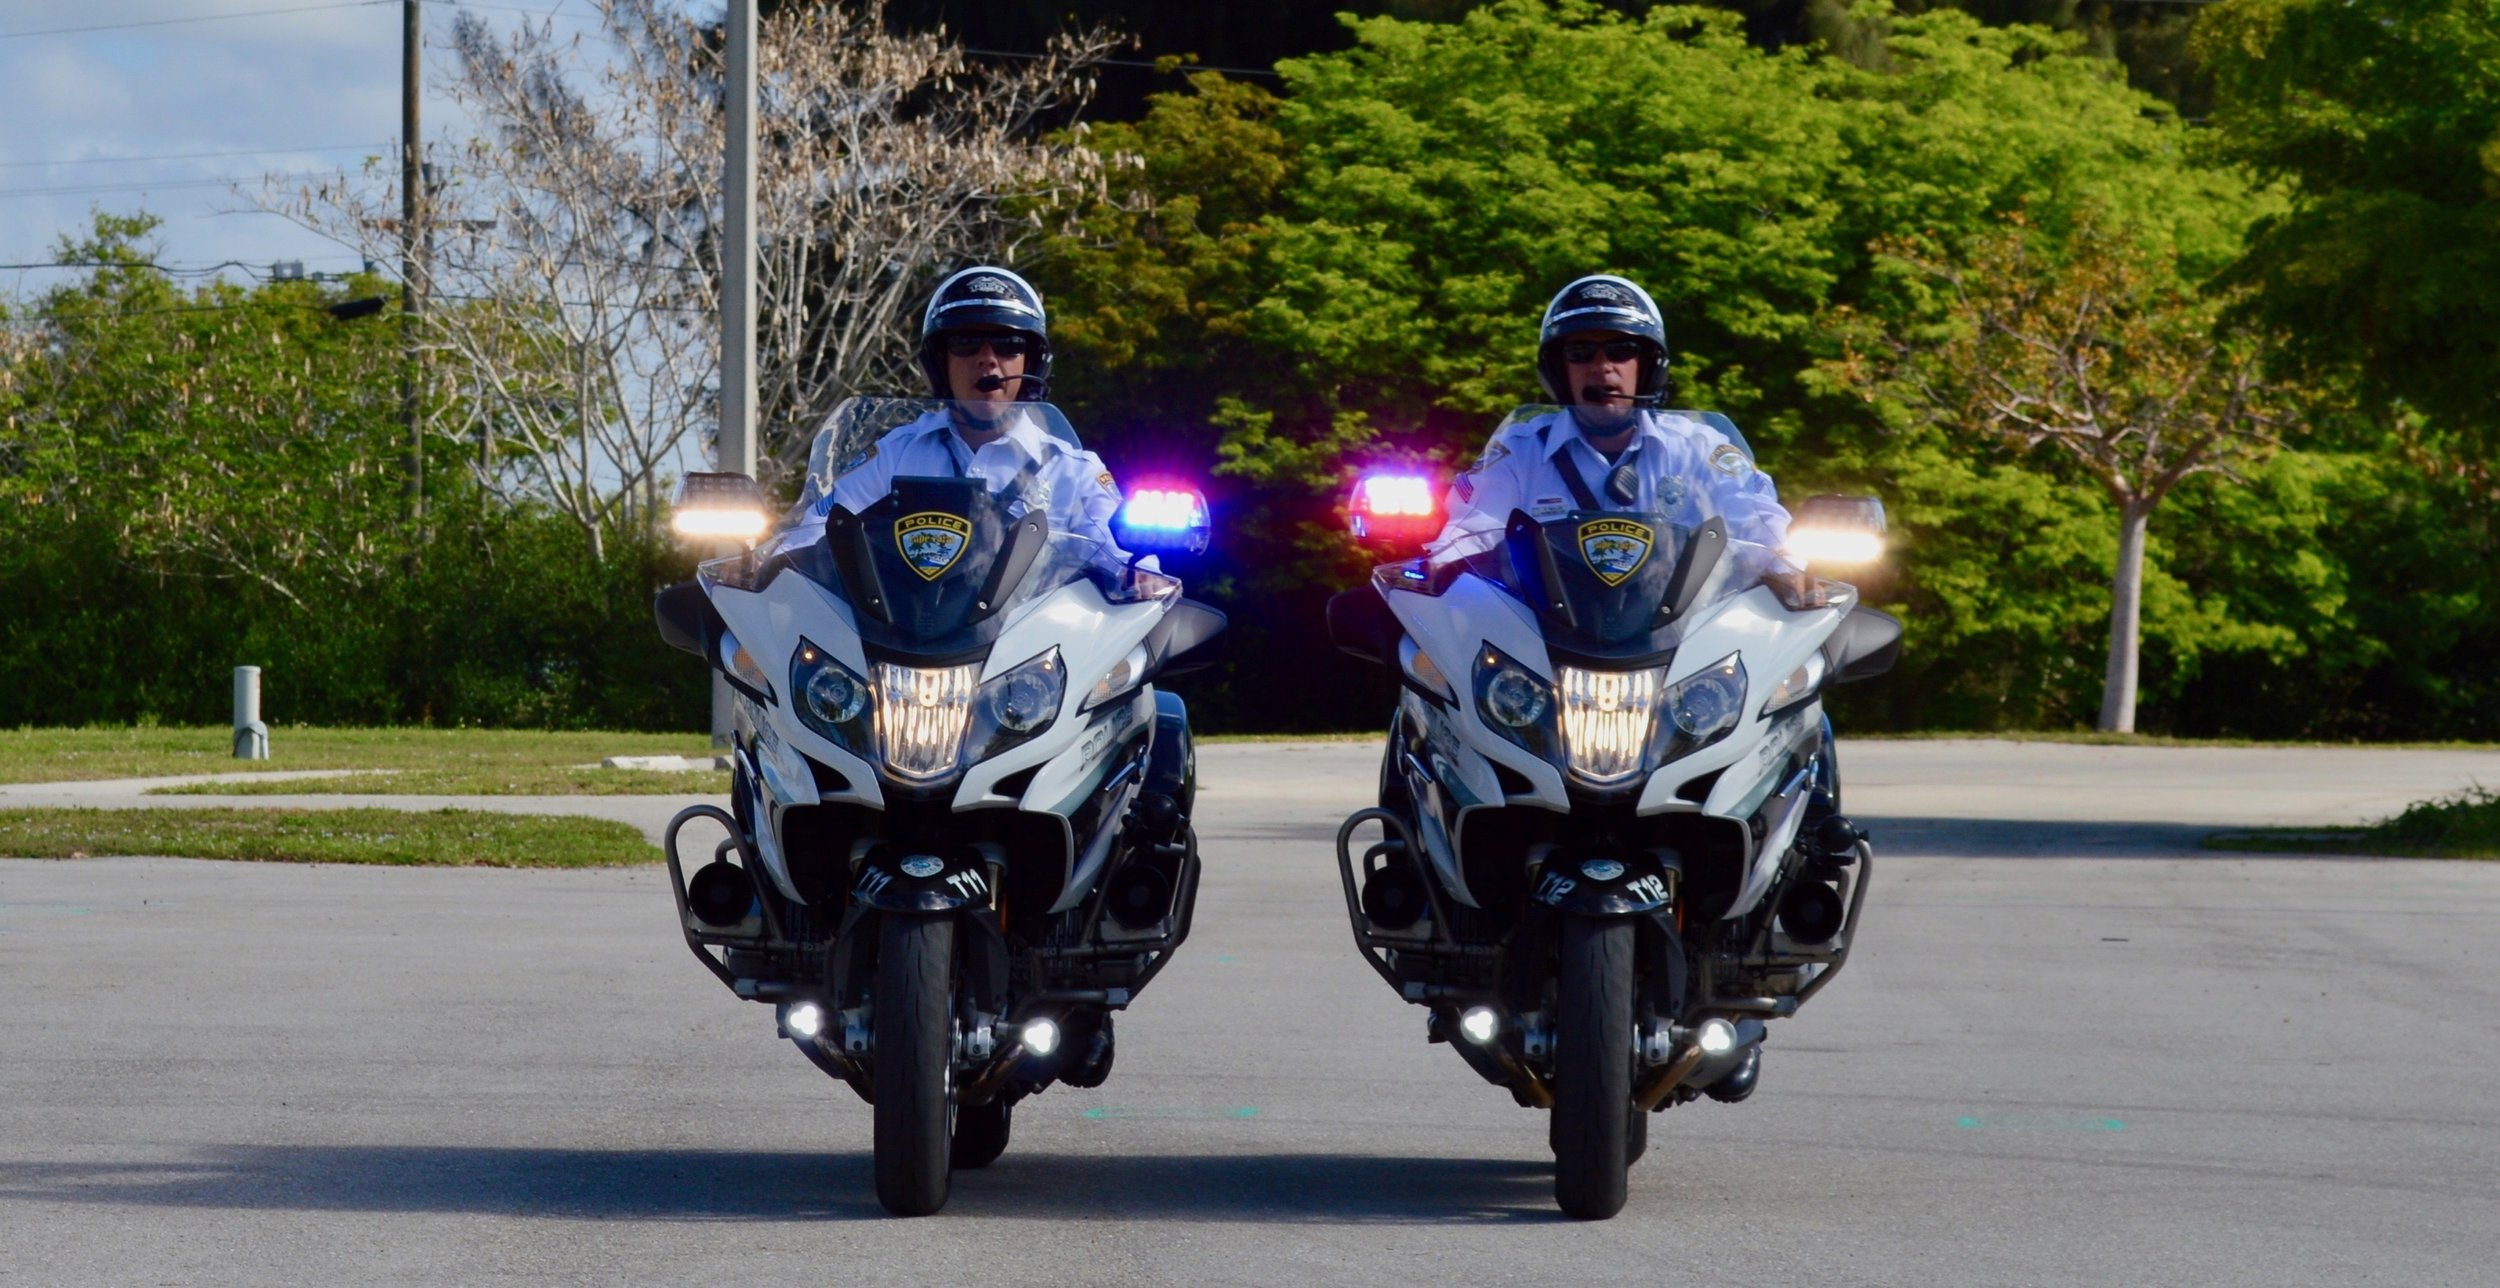 A few of CCPD's motor units rolling on the department's BMW R1200s.